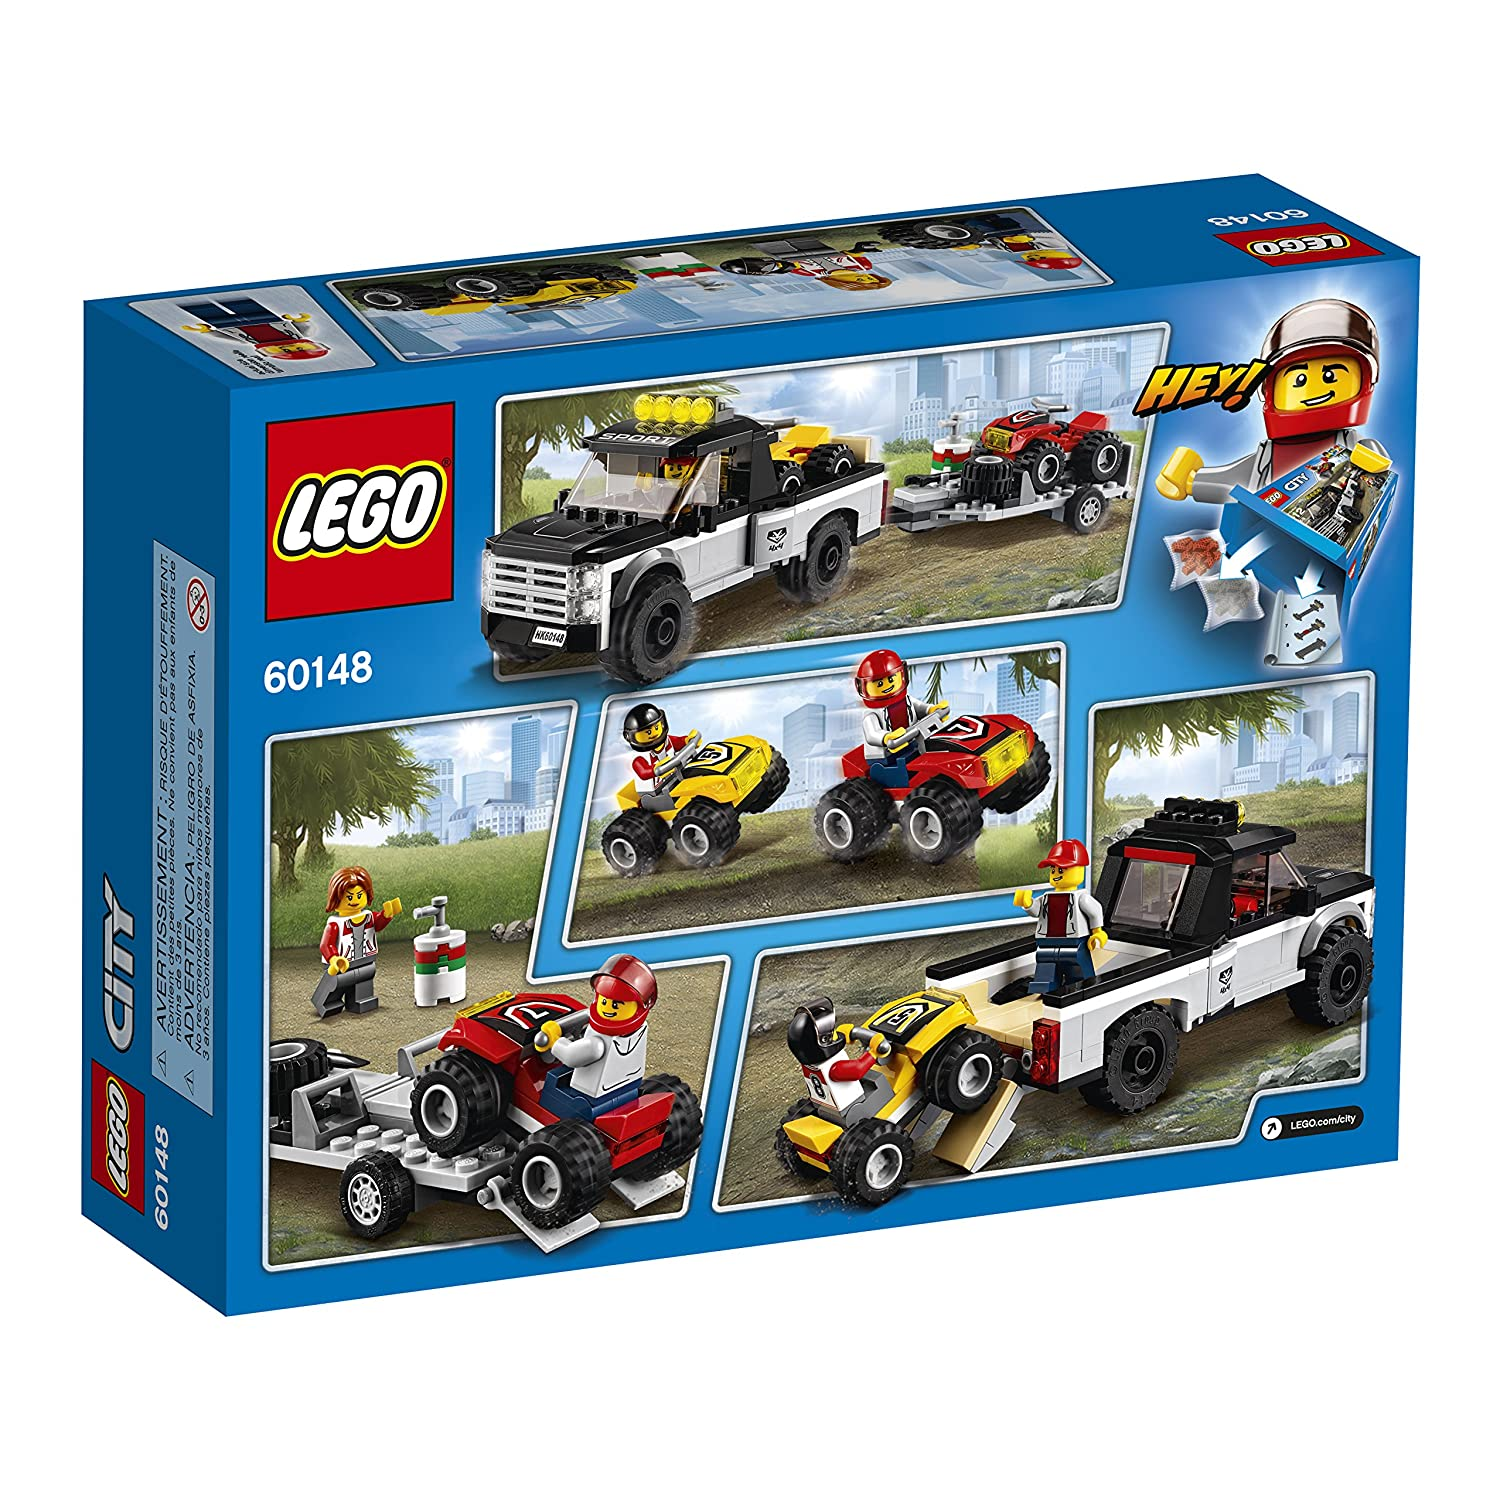 LEGO City Race Team 60148 Image 3